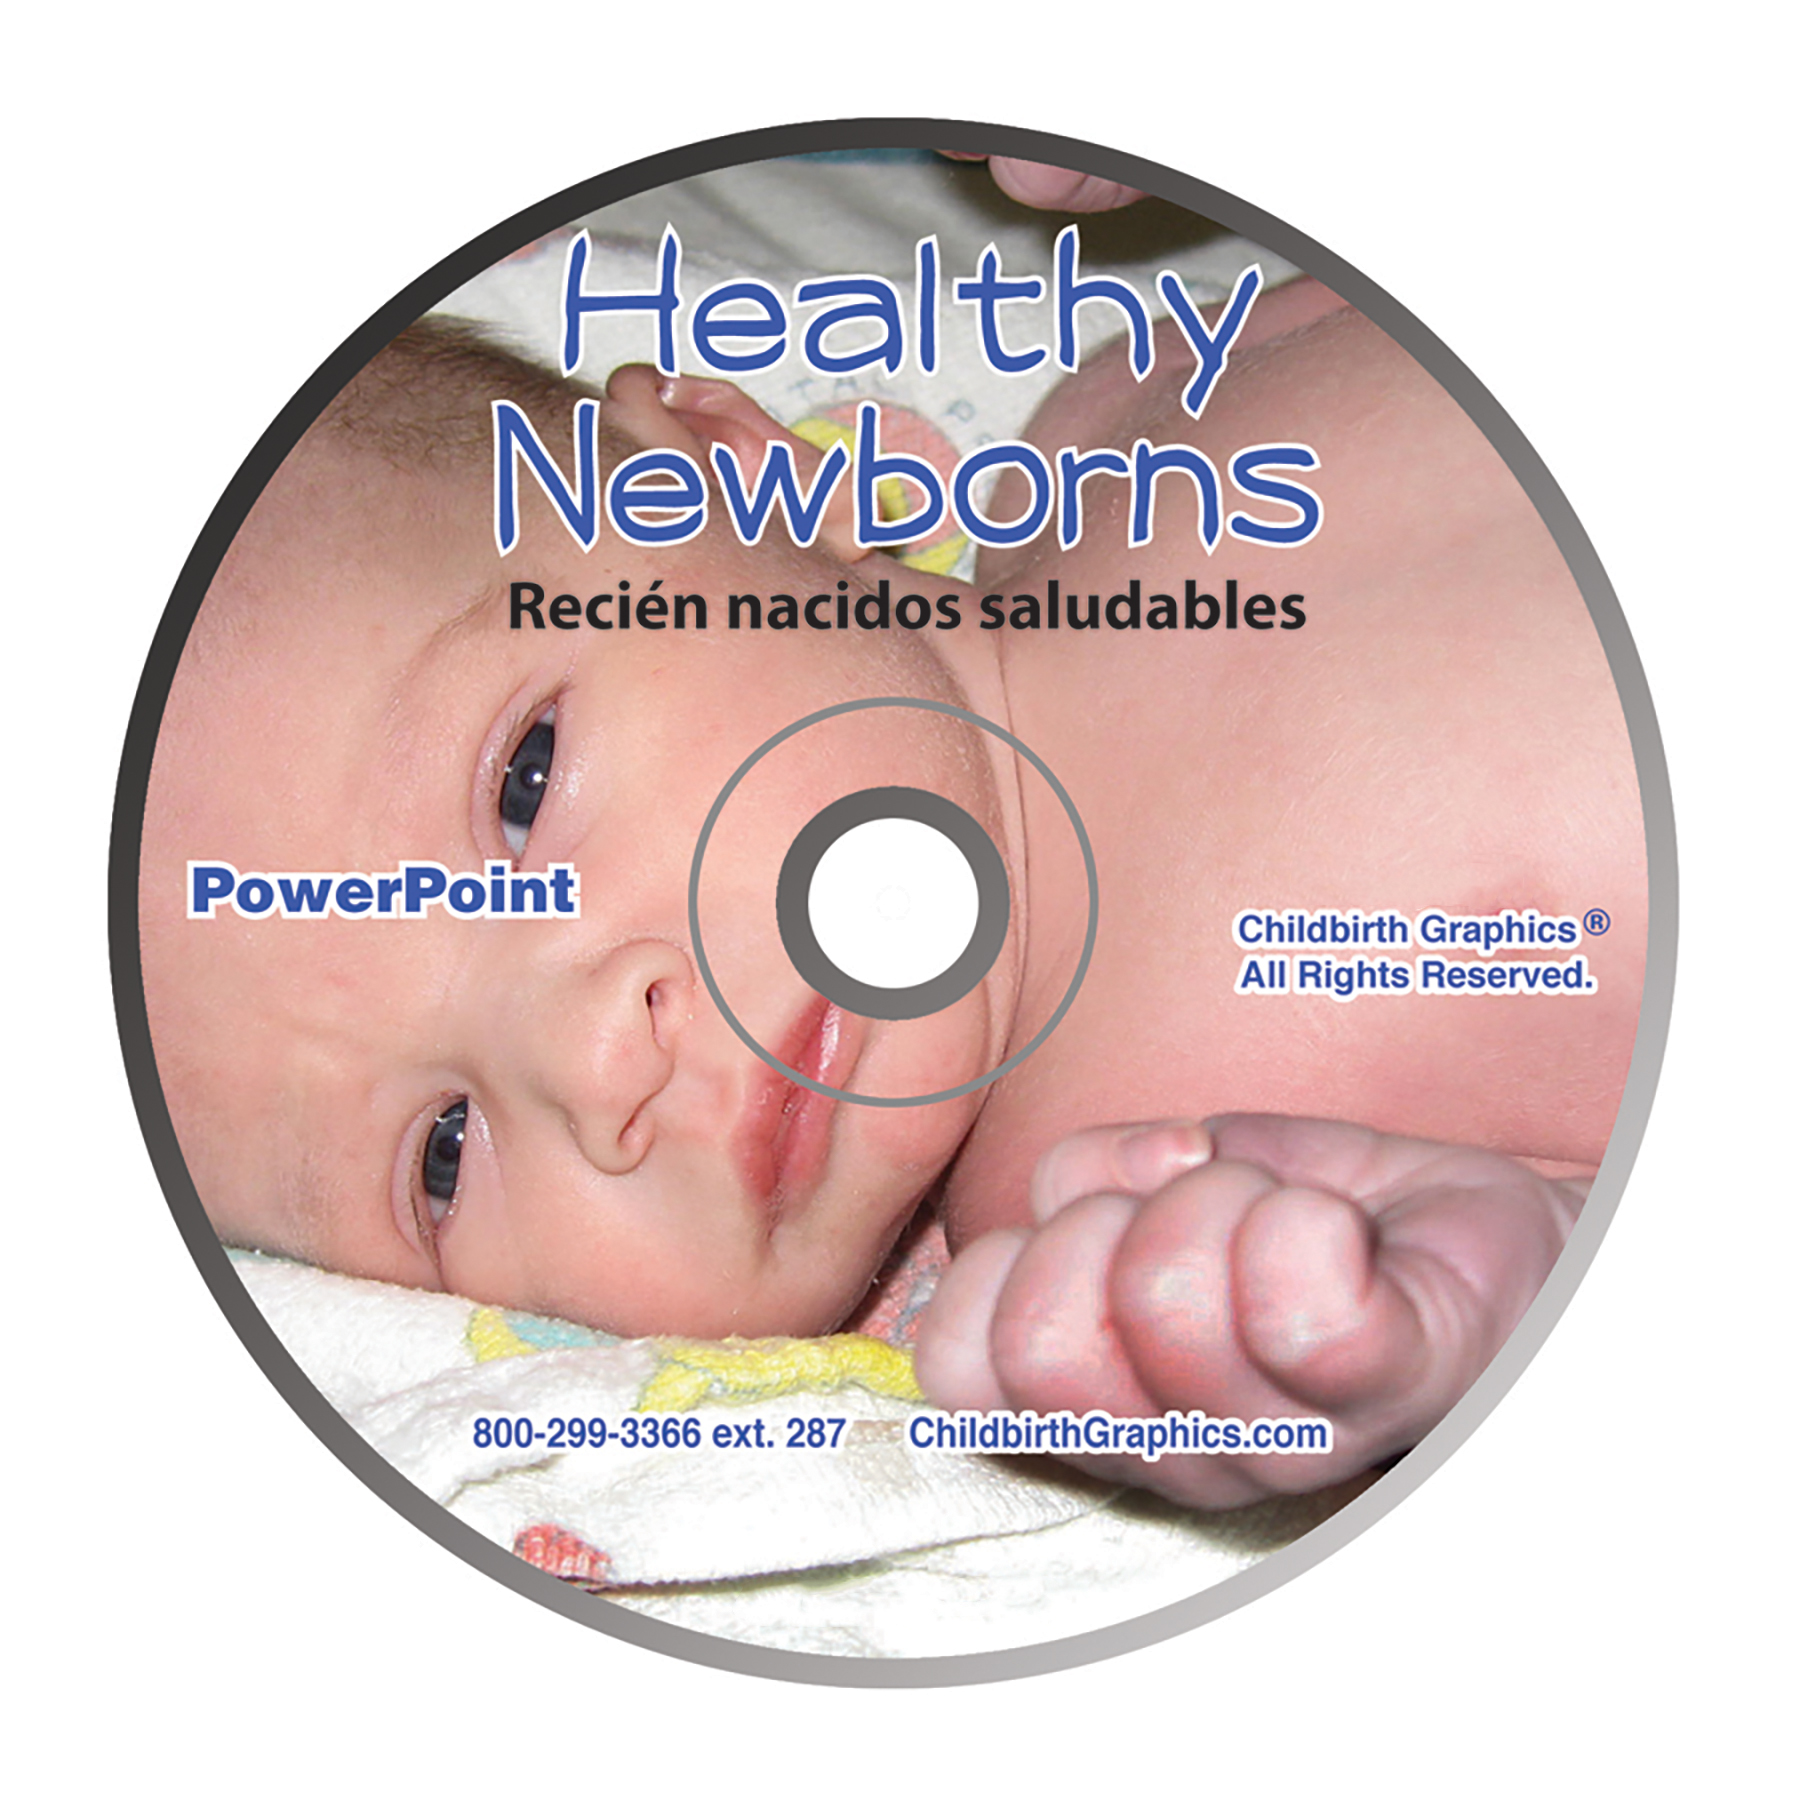 Healthy Newborns PowerPoint disk image, closeup of newborn laying on back, Childbirth Graphics 48514